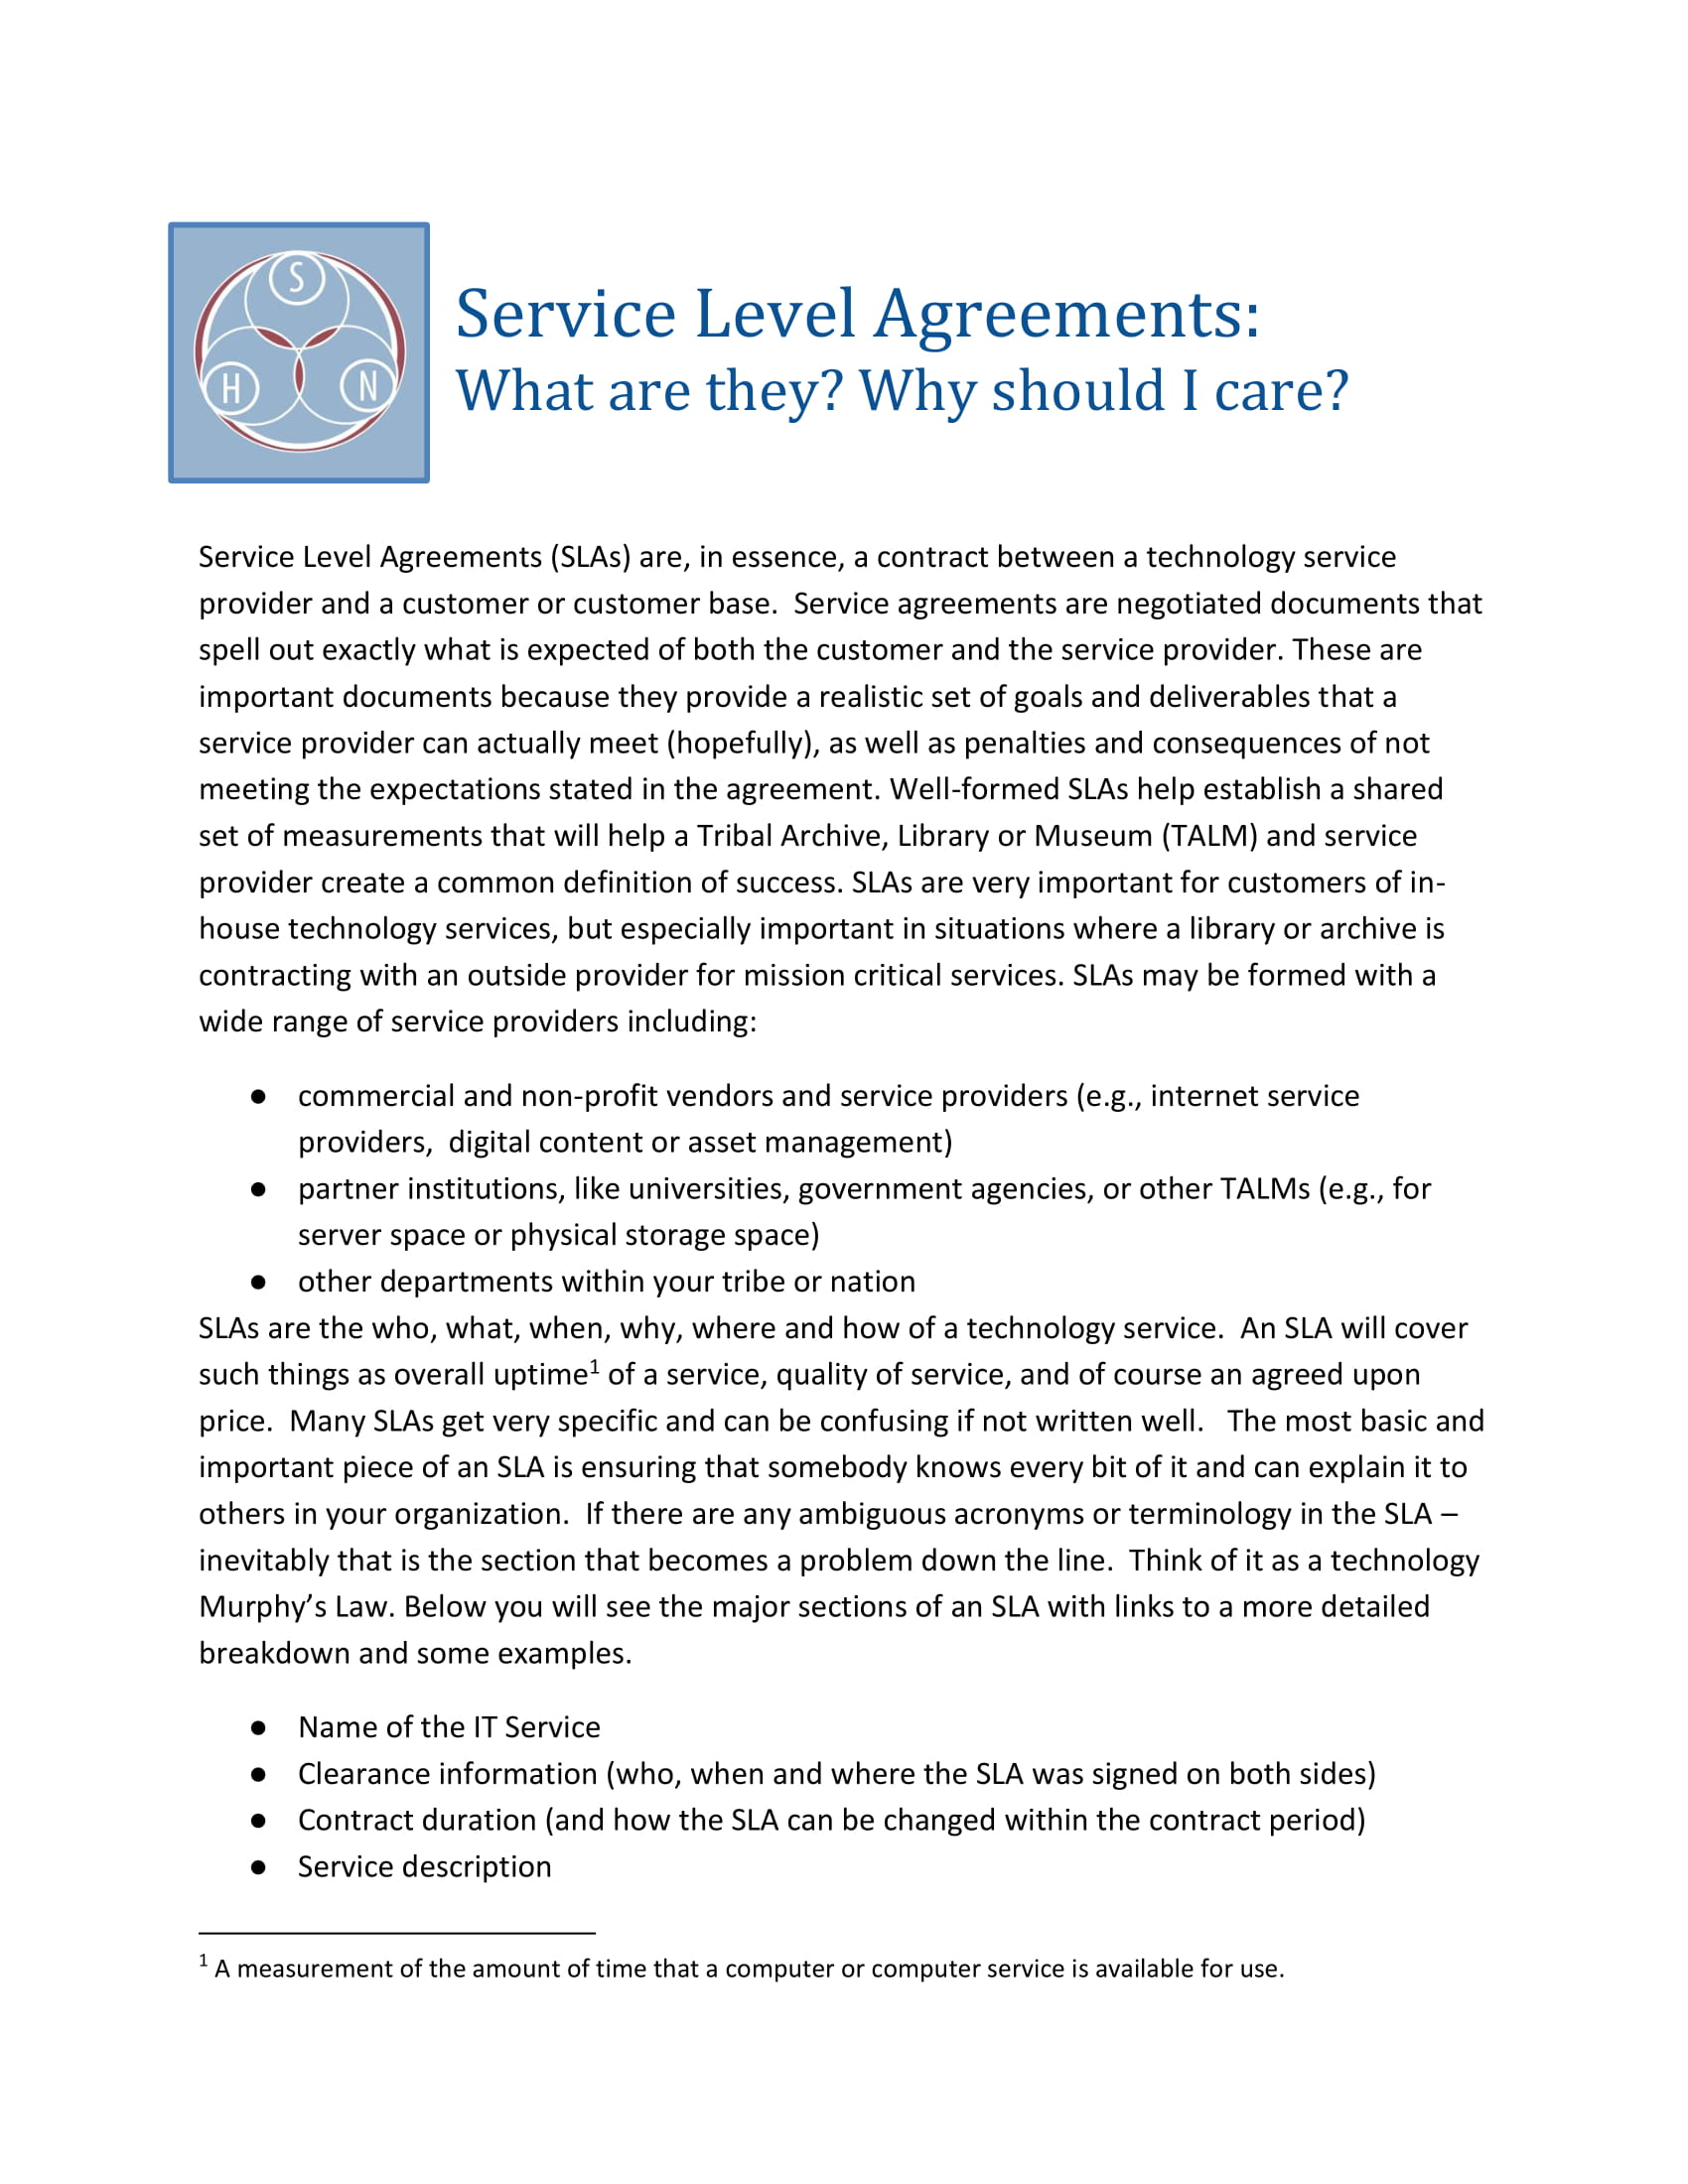 service level agreement guides example 1